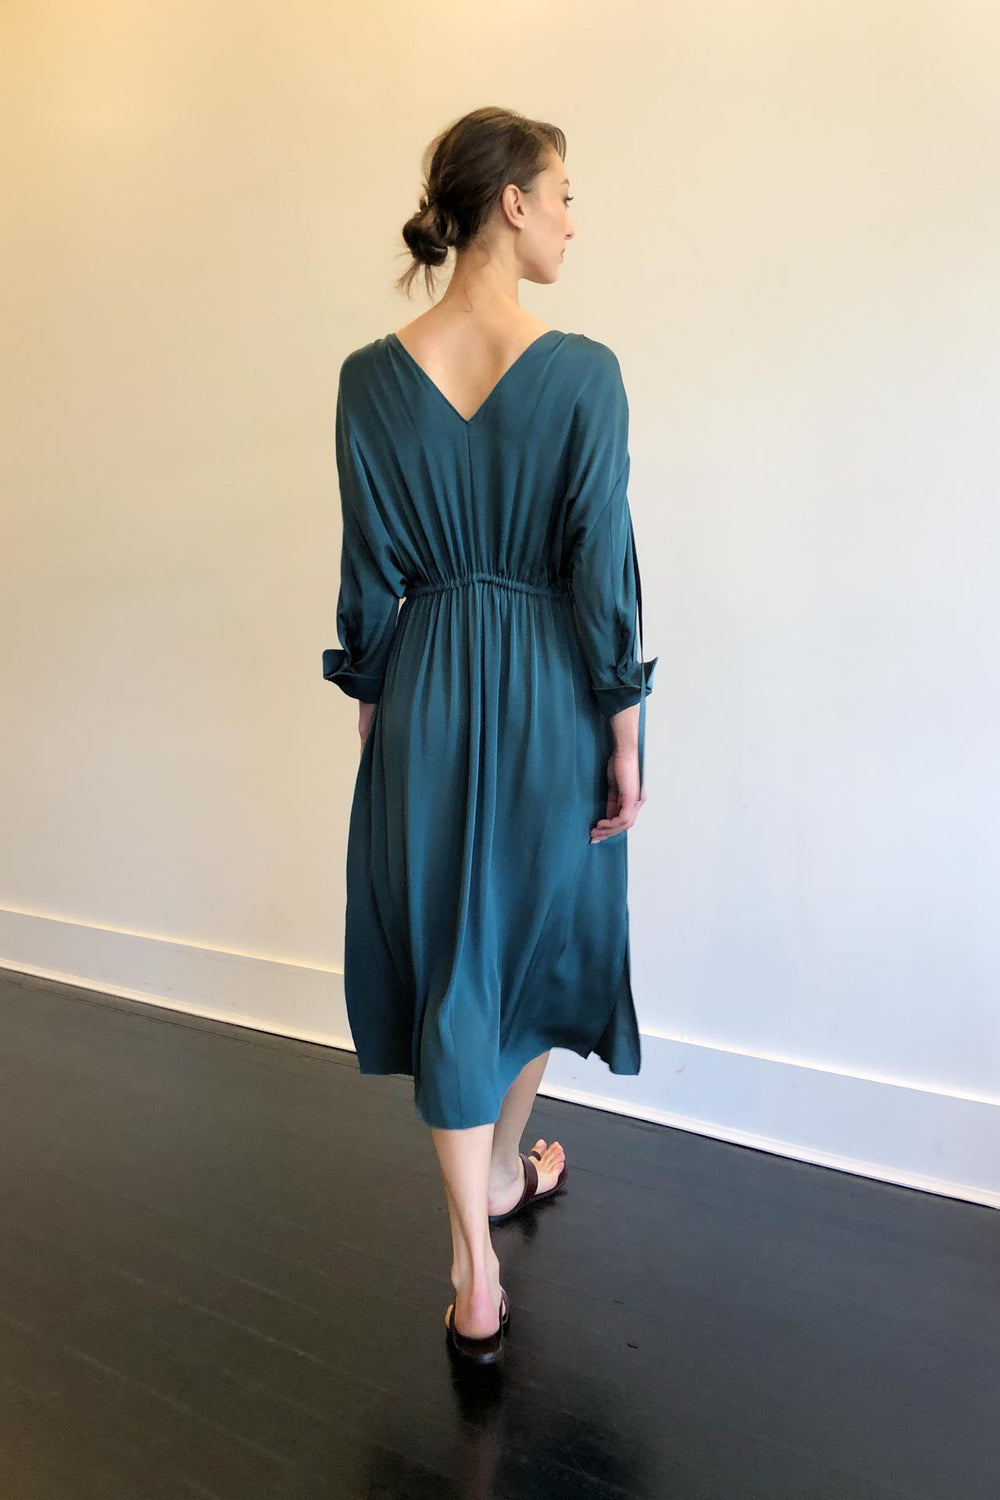 Fashion Designer CARL KAPP collection | Denise Onesize Fits All Silk Dress Slate | Sydney Australia